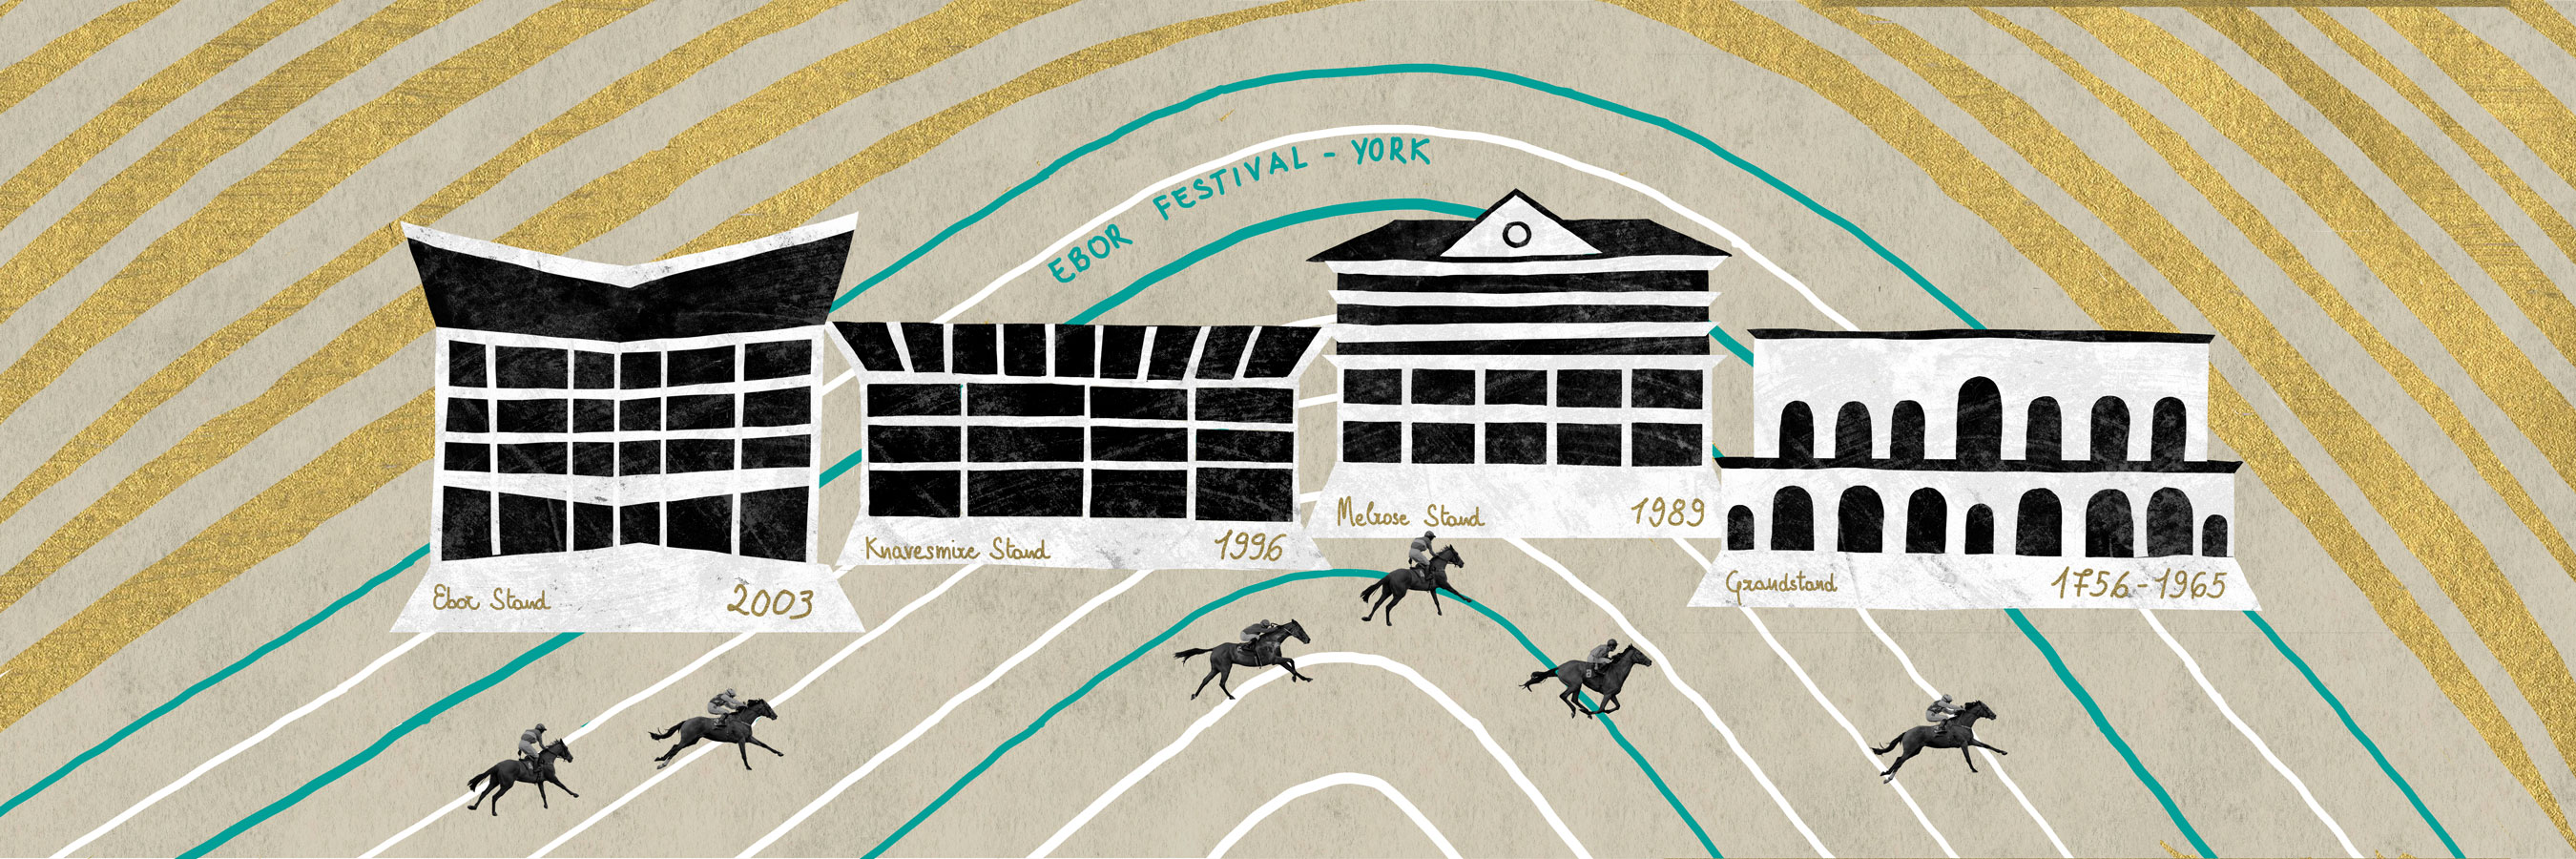 The Ebor Festival - York Racecourse